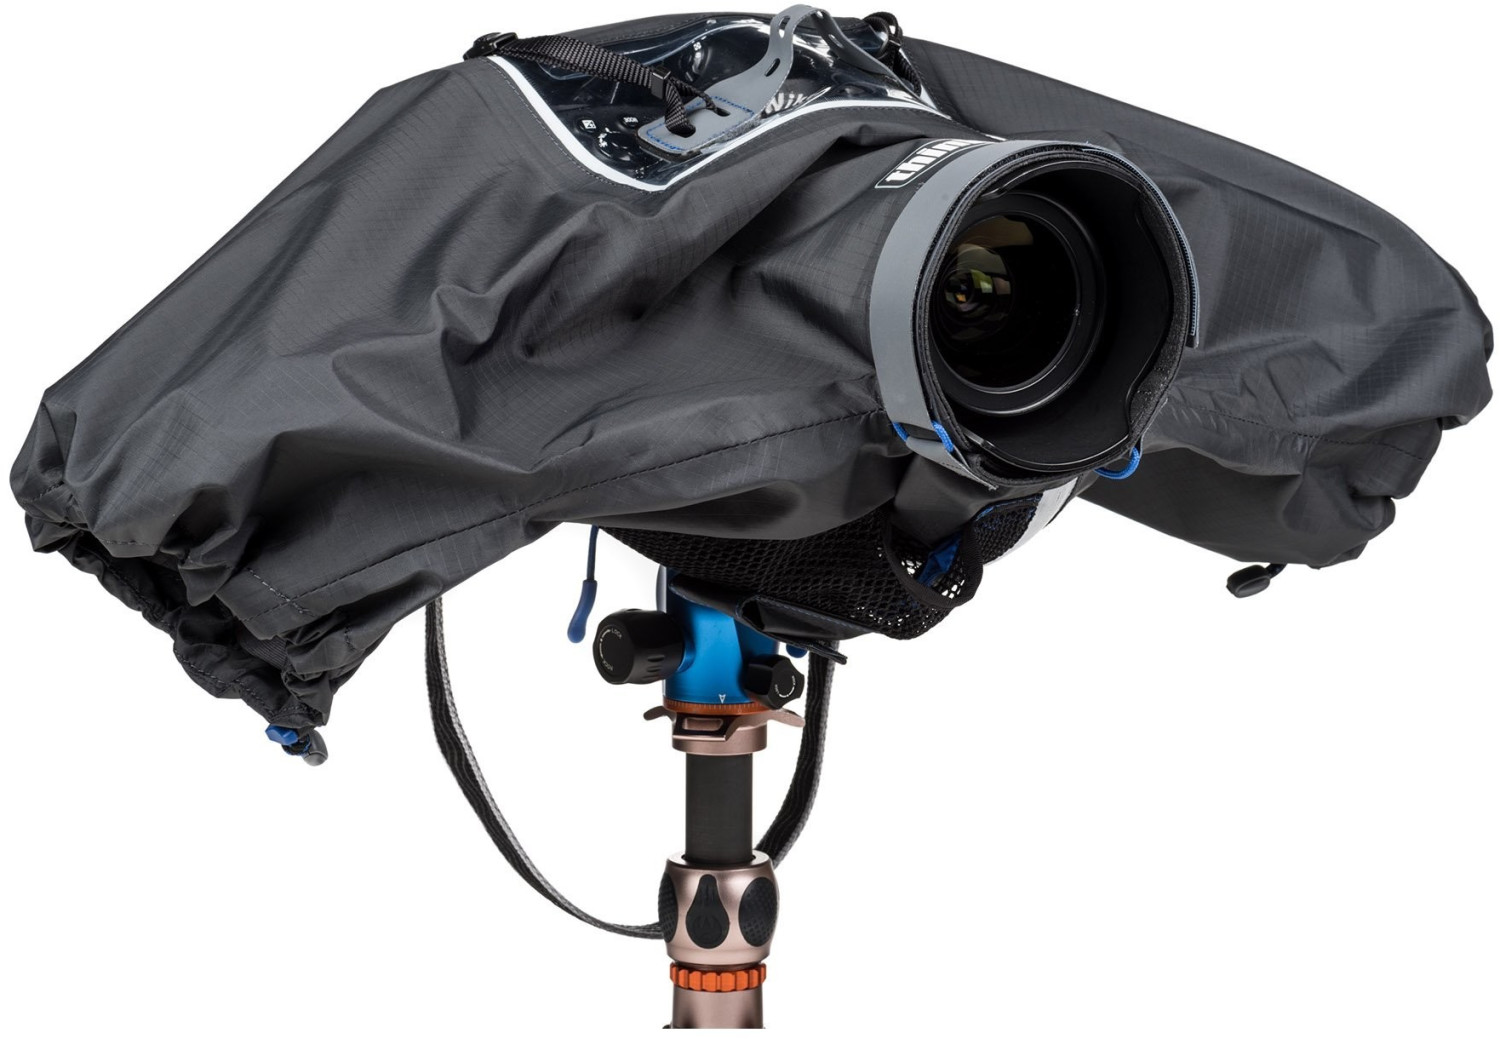 *Think Tank Photo Hydrophobia DSLR 24-70 V3.0*